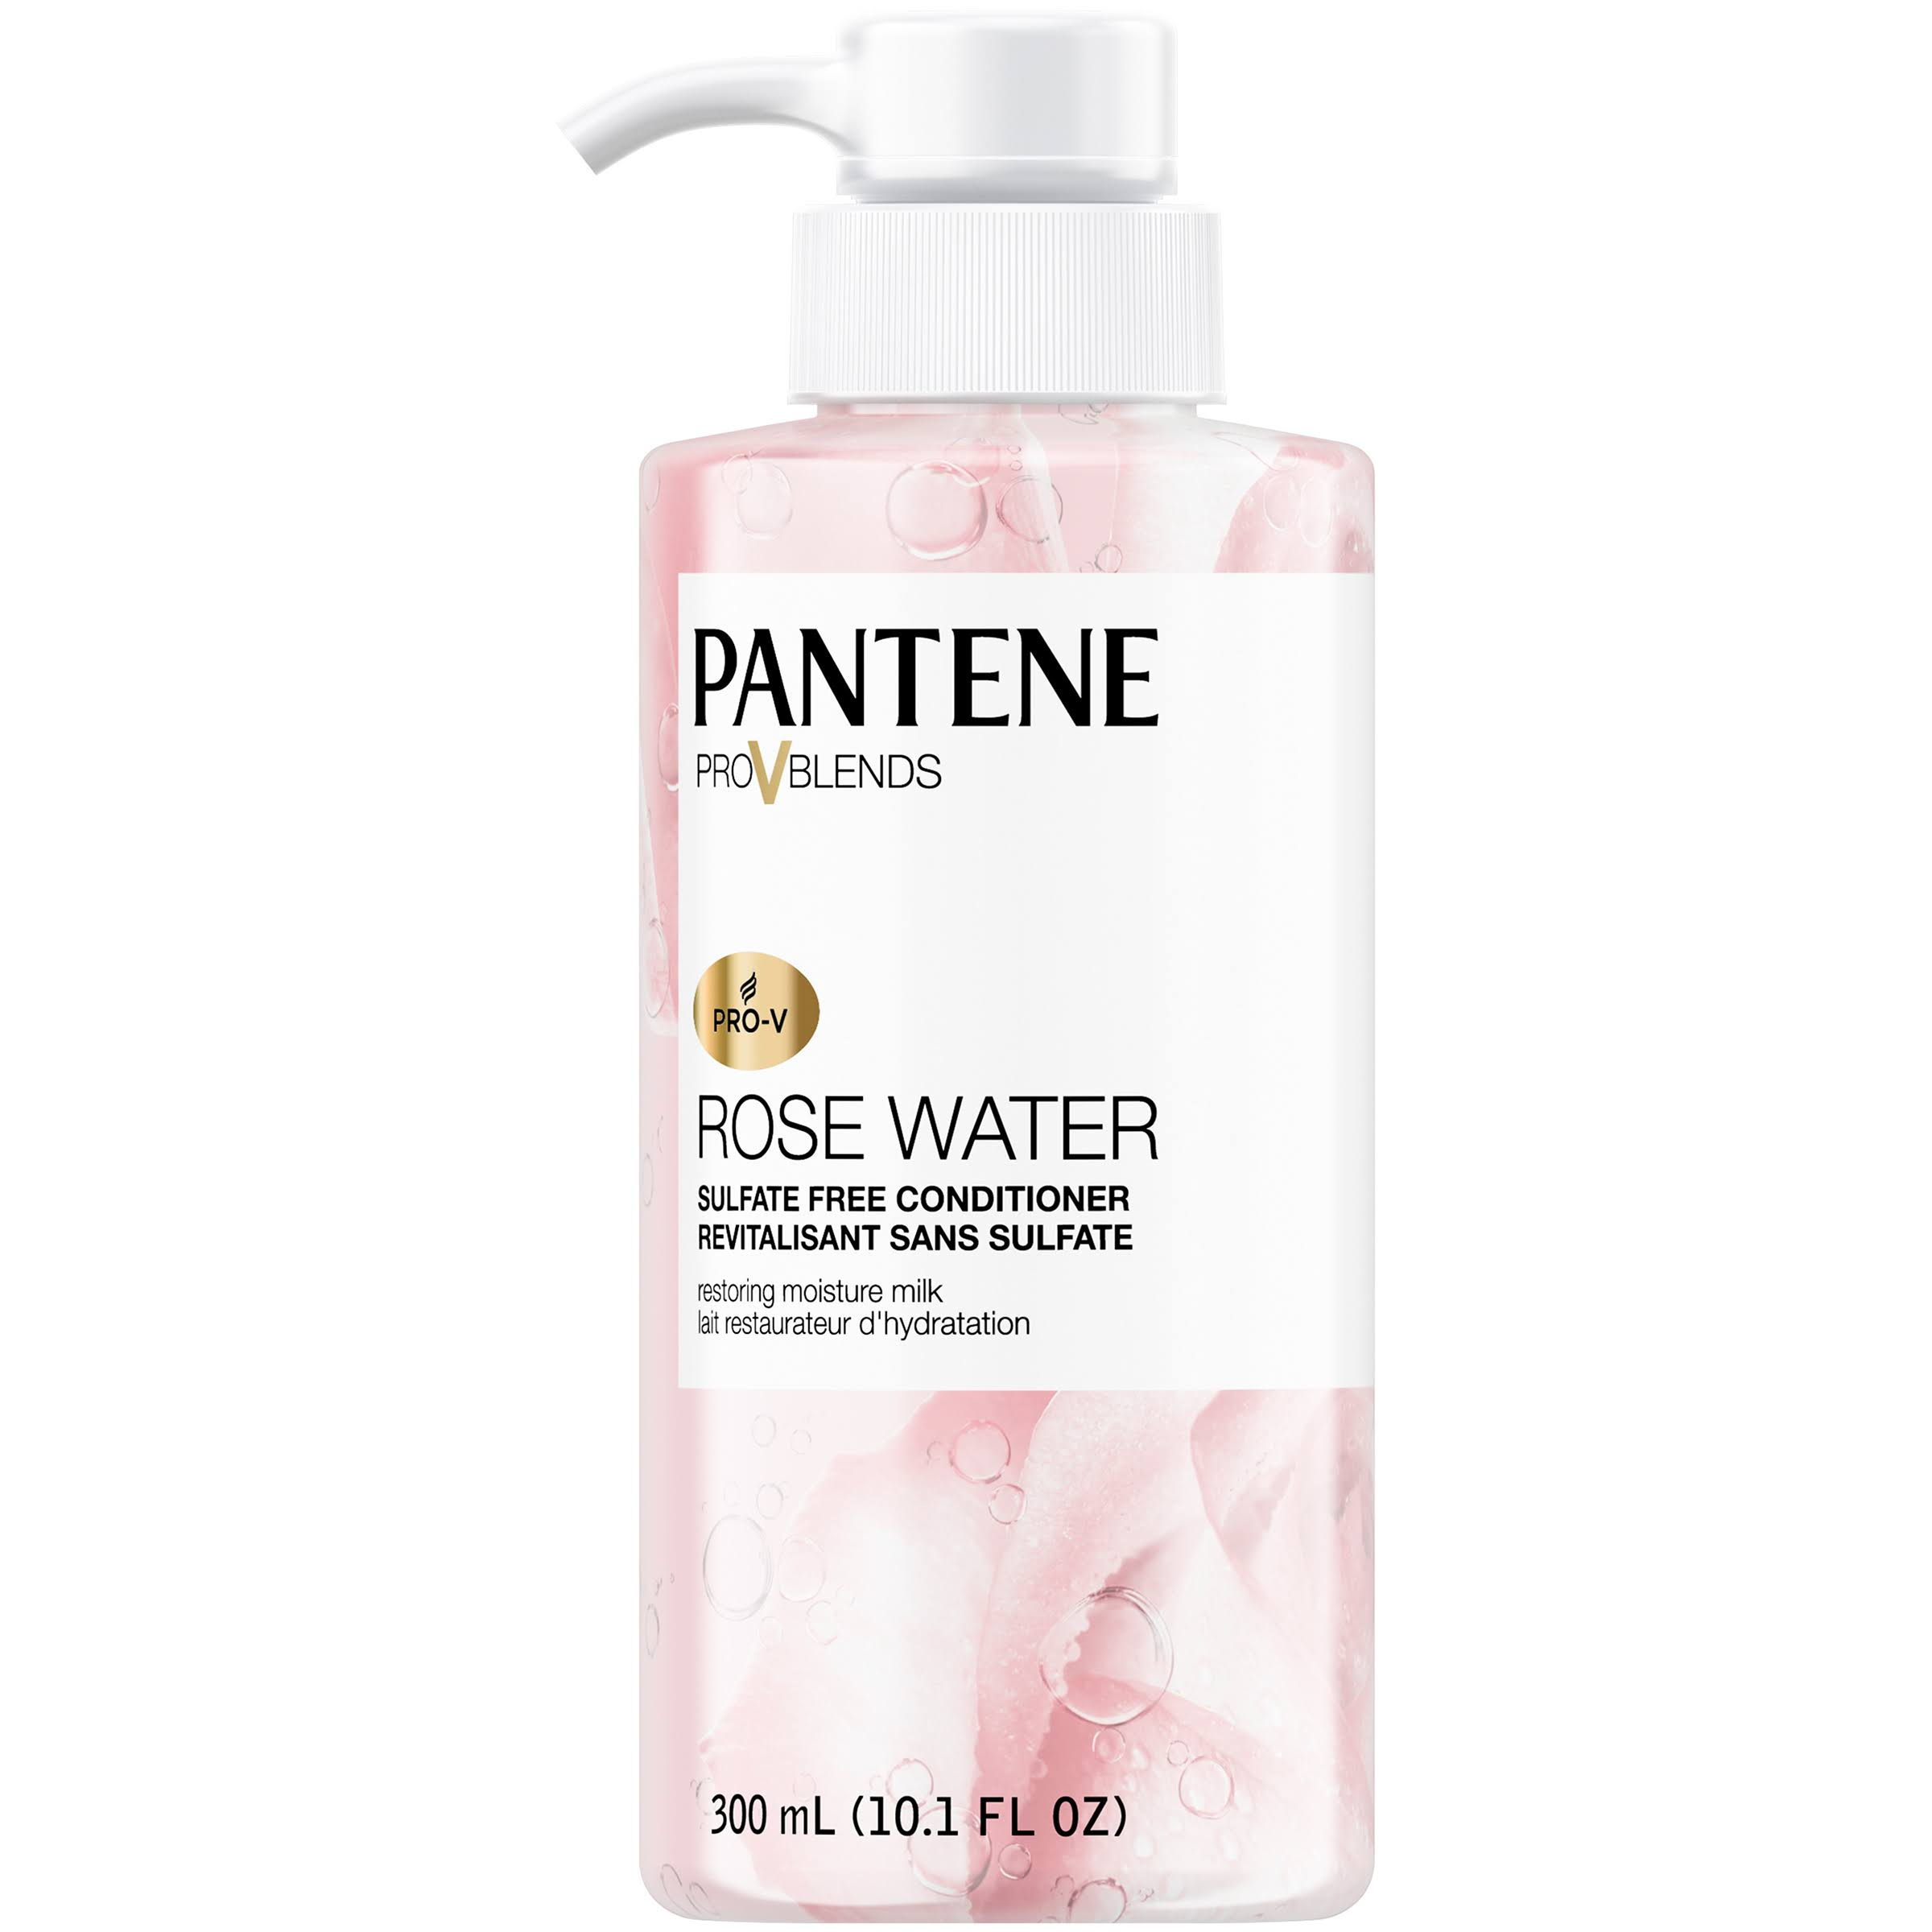 Pantene Pro-V Blends Rose Water Conditioner - 10.1oz